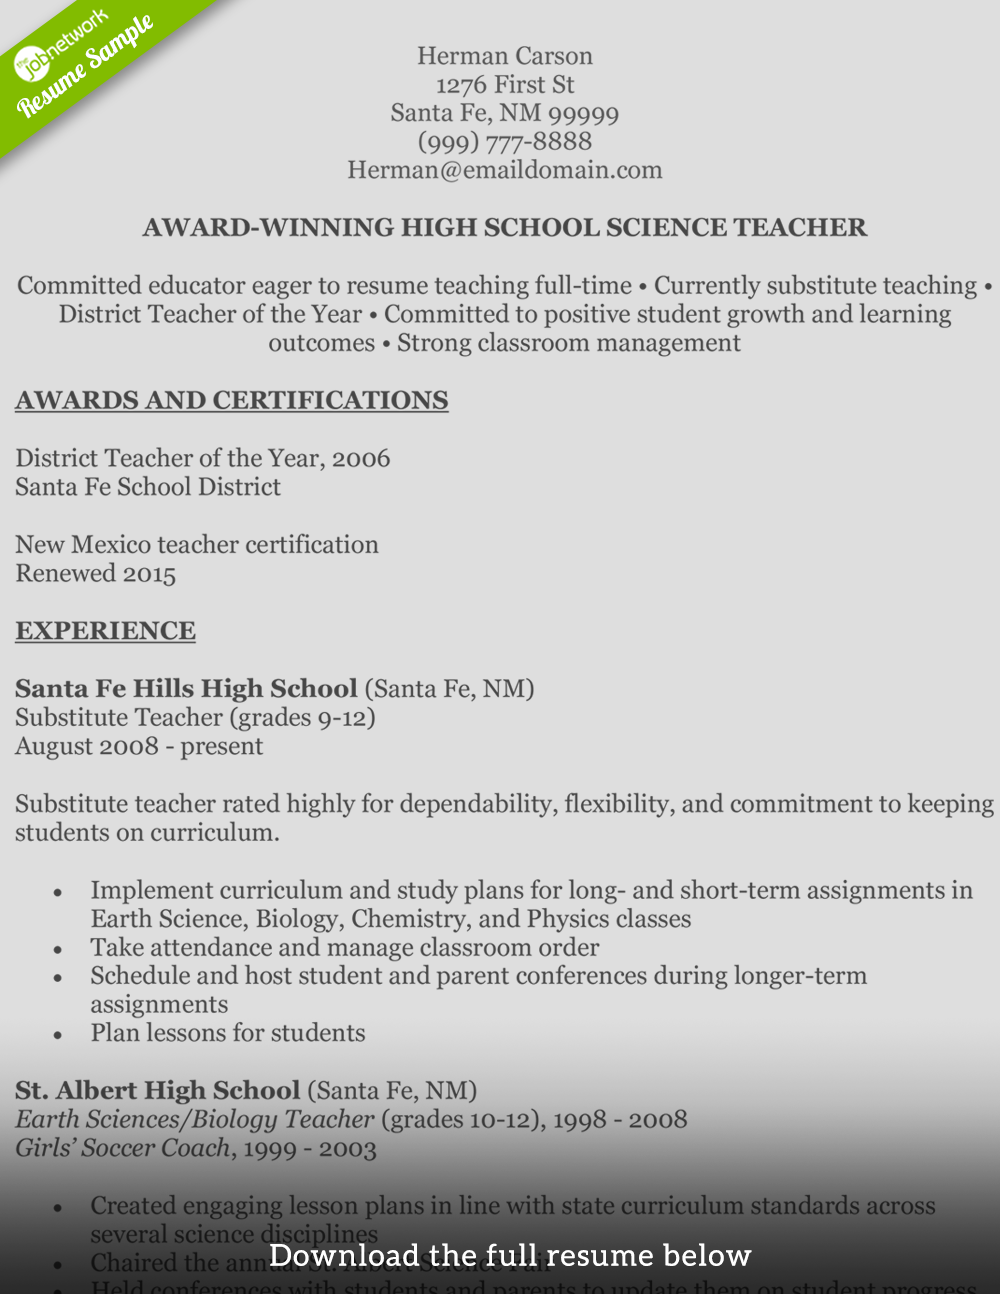 teaching resume herman carson - Resume For Substitute Teachers